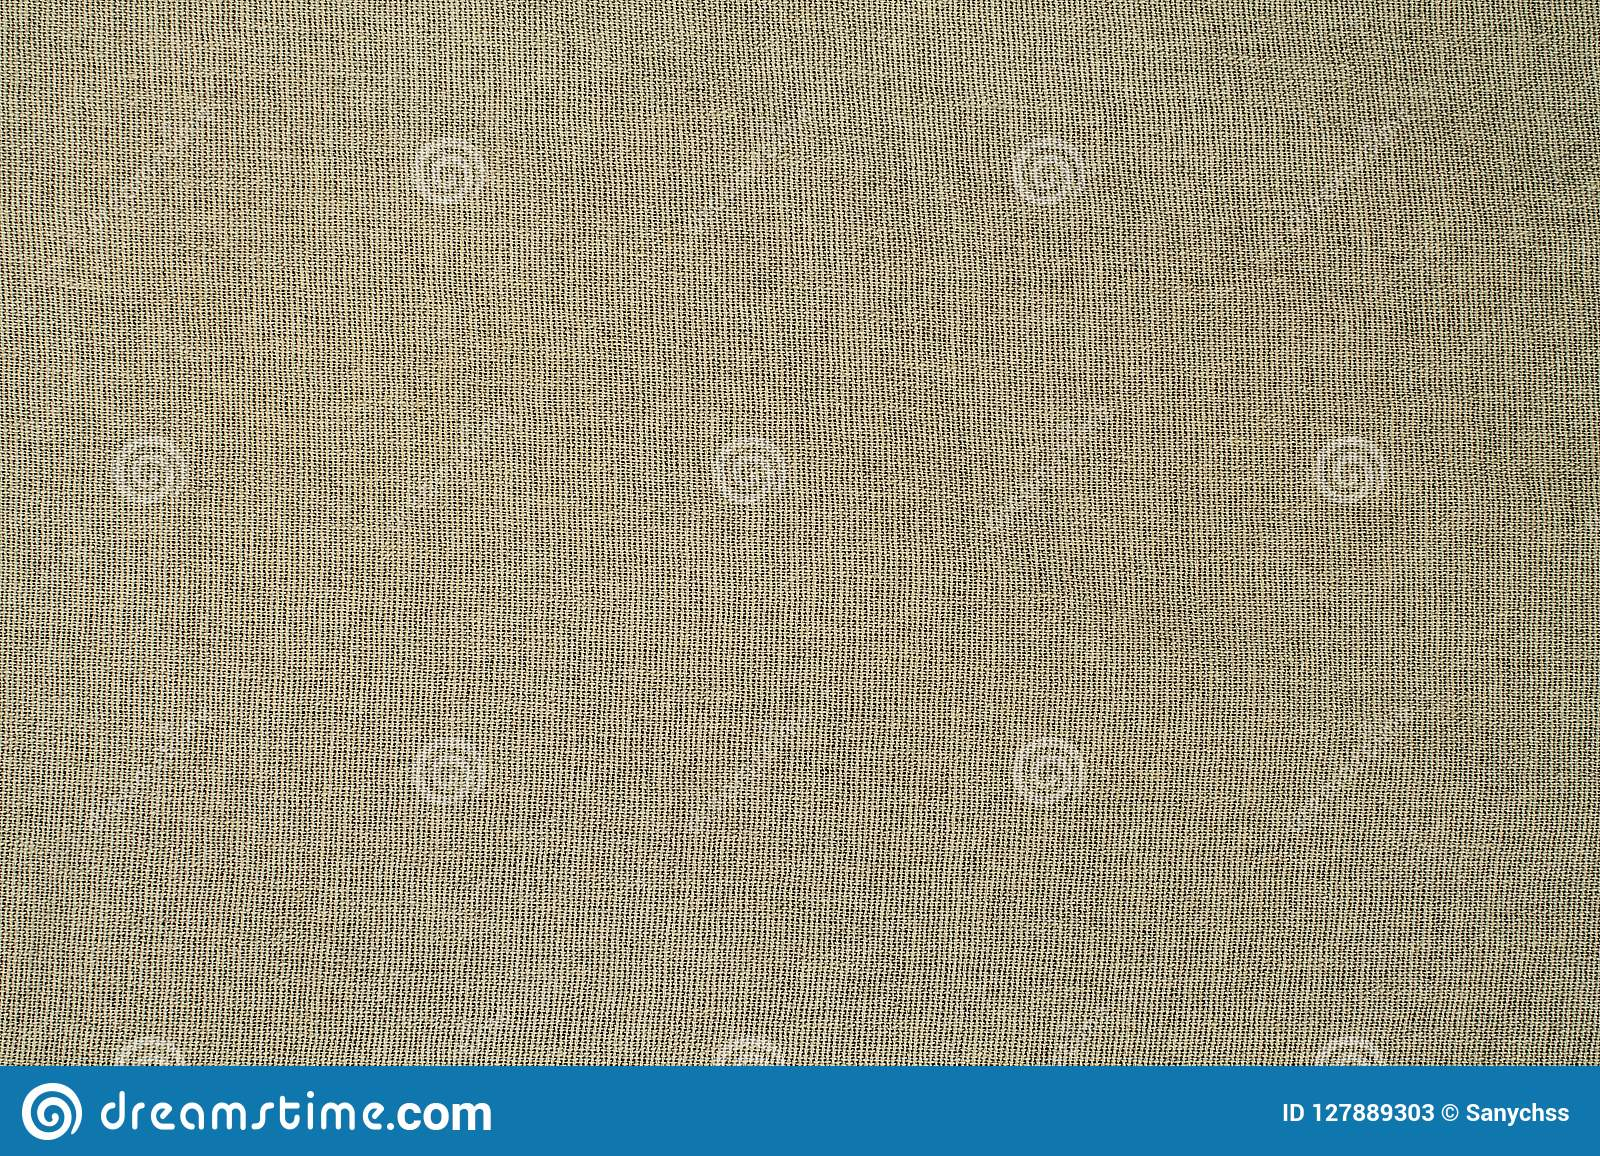 Linen Background Texture Free Stock Photos Download 9 467: Natural Linen Material Textile Canvas Texture Background